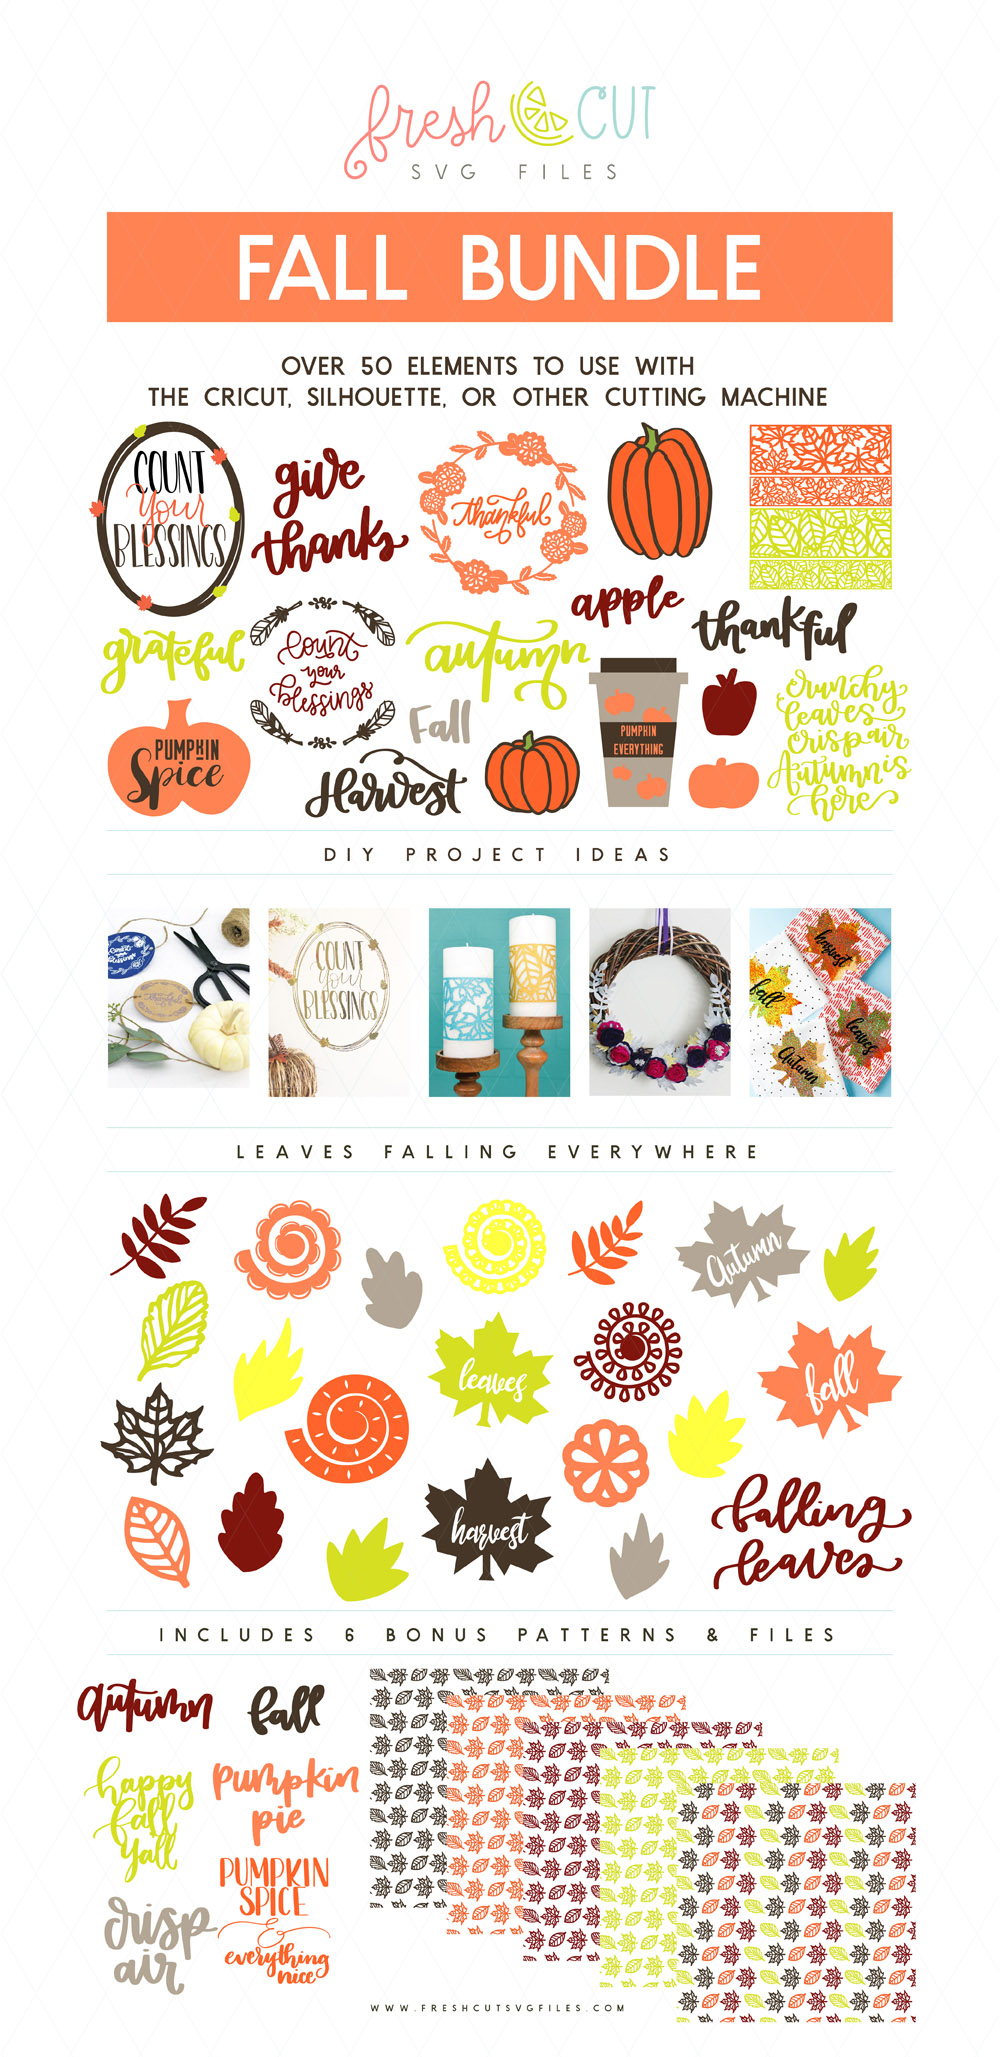 Over 50 Fall SVG File elements to use with the cricut, silhouette, or other cutting machine!